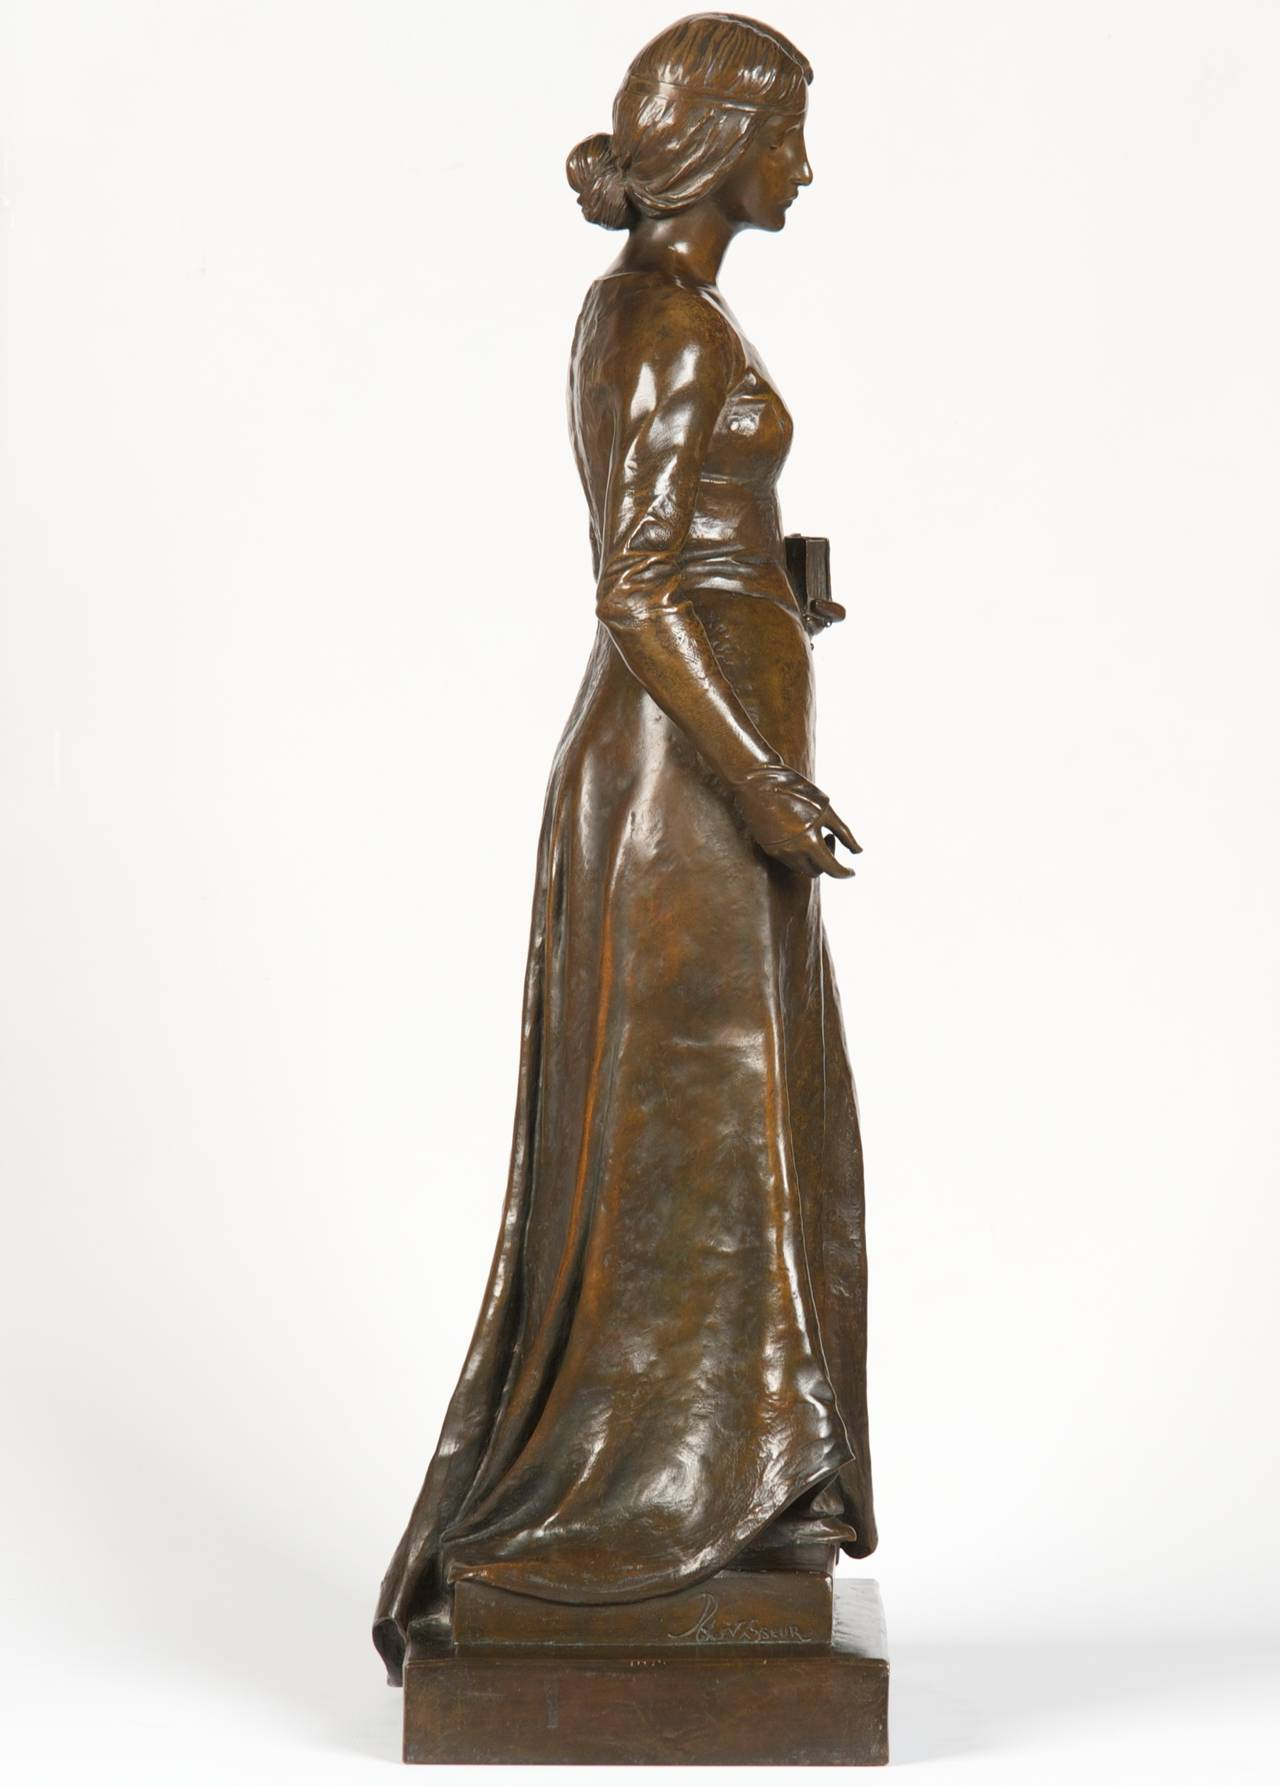 HENRI LEVASSEUR (FRENCH, 1853-1934) FINE ANTIQUE BRONZE SCULPTURE Maiden w/ Rosary and Book, Paris c. 1900 Item # 1401YWB29PQ  A substantial and striking antique French bronze sculpture by Henri Levasseur, this is an exceptional and rather